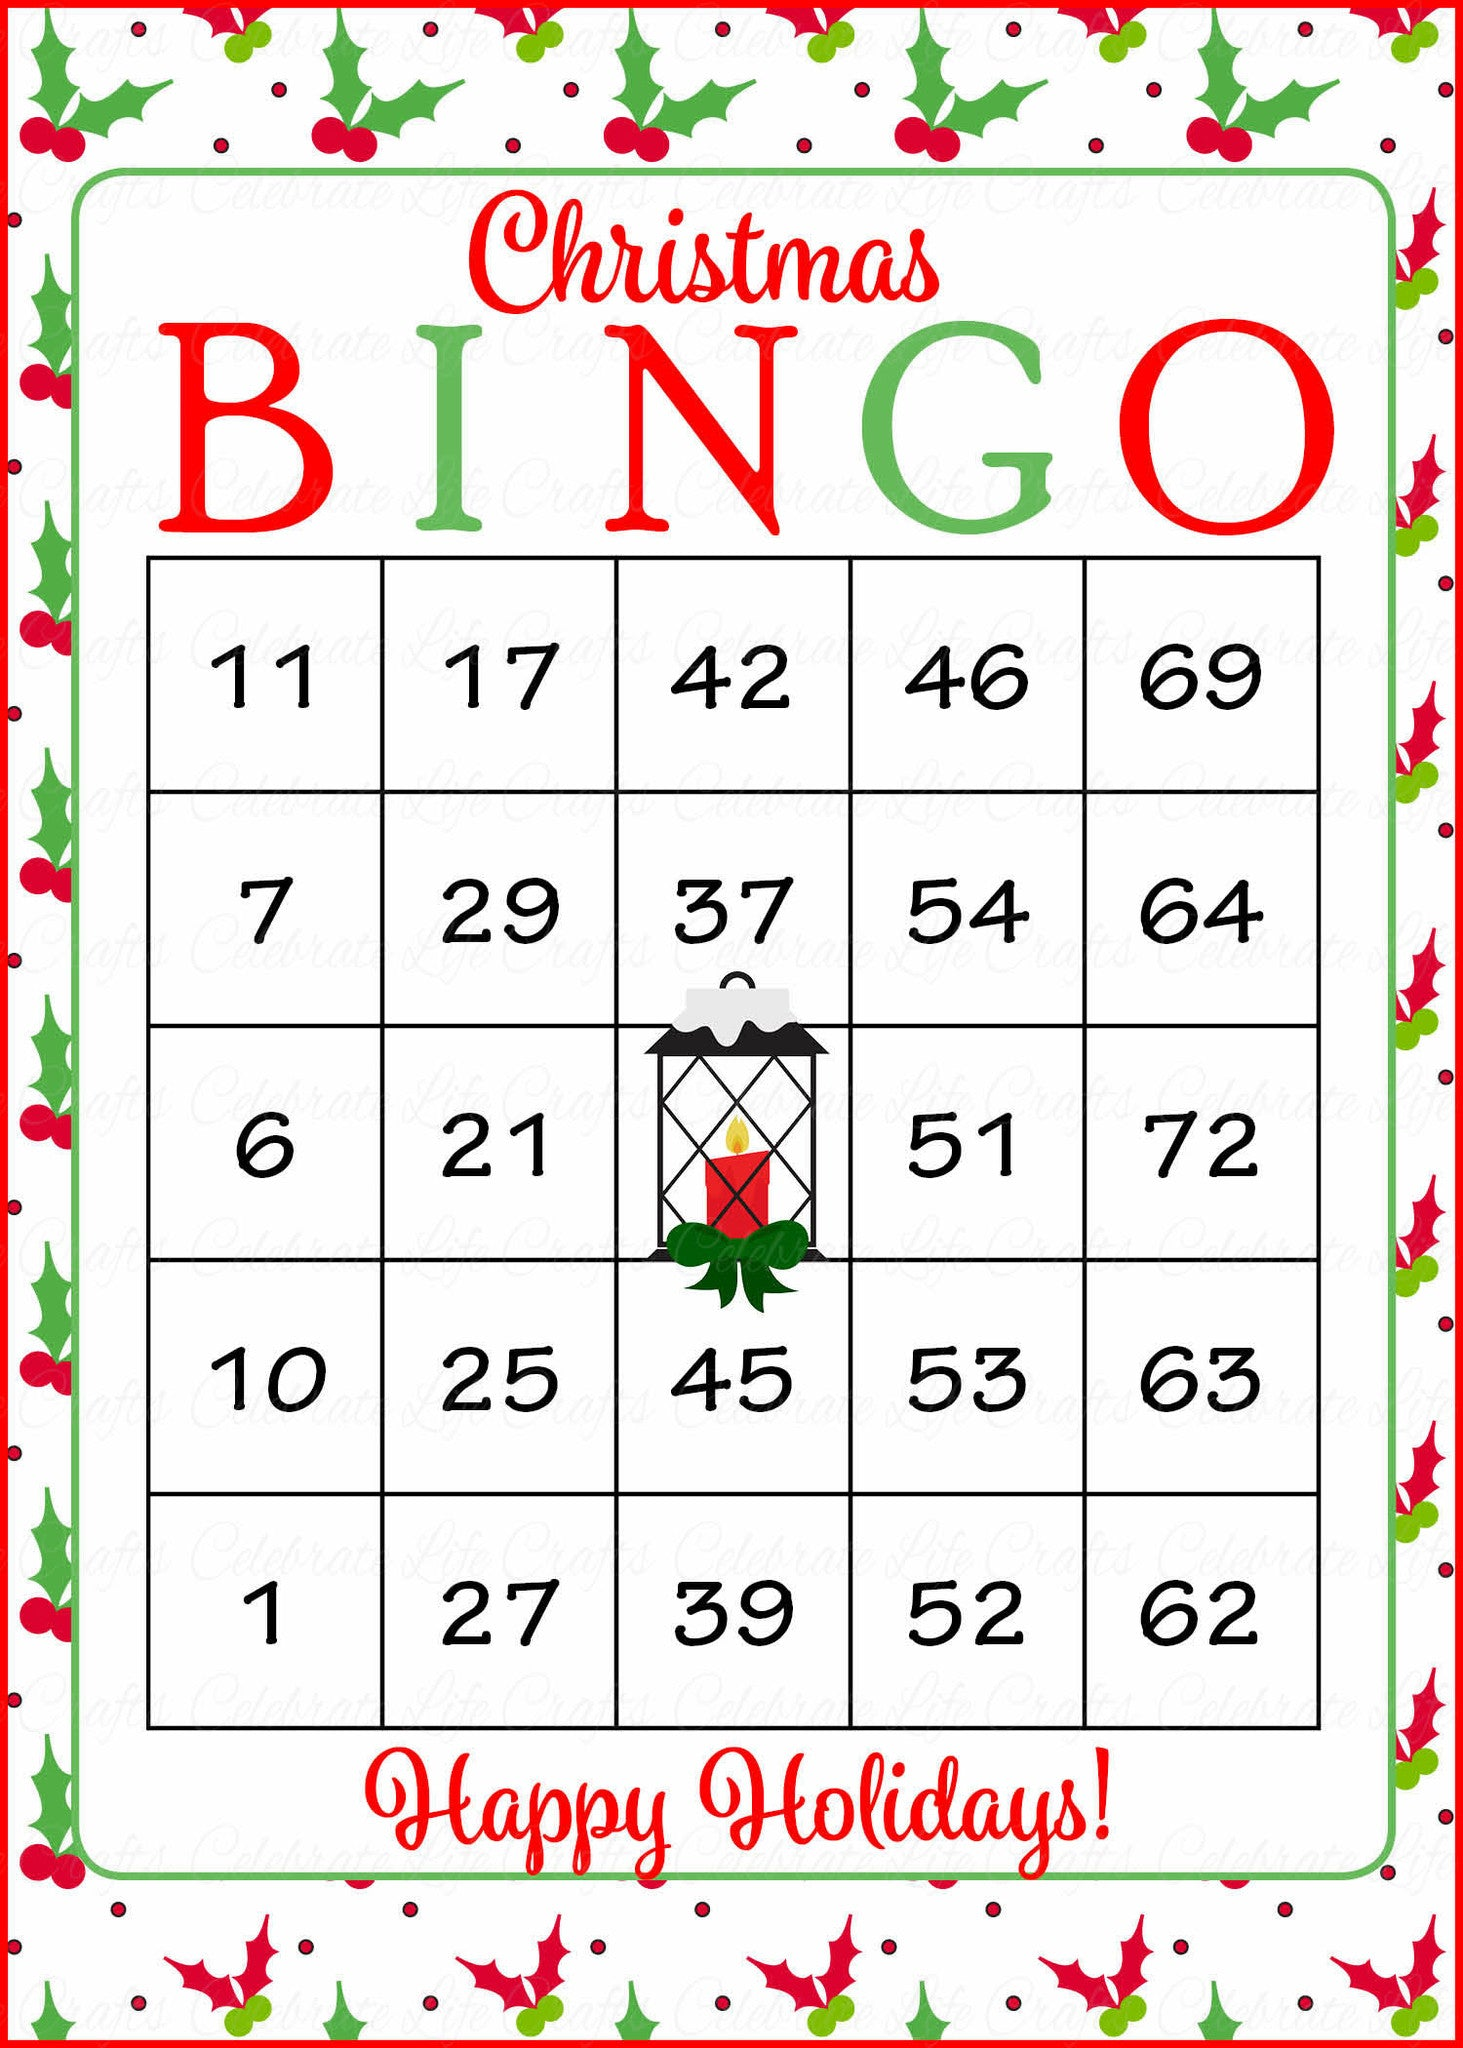 photo relating to Printable Christmas Party Games called Xmas Bingo Recreation Obtain for Trip Bash Guidelines